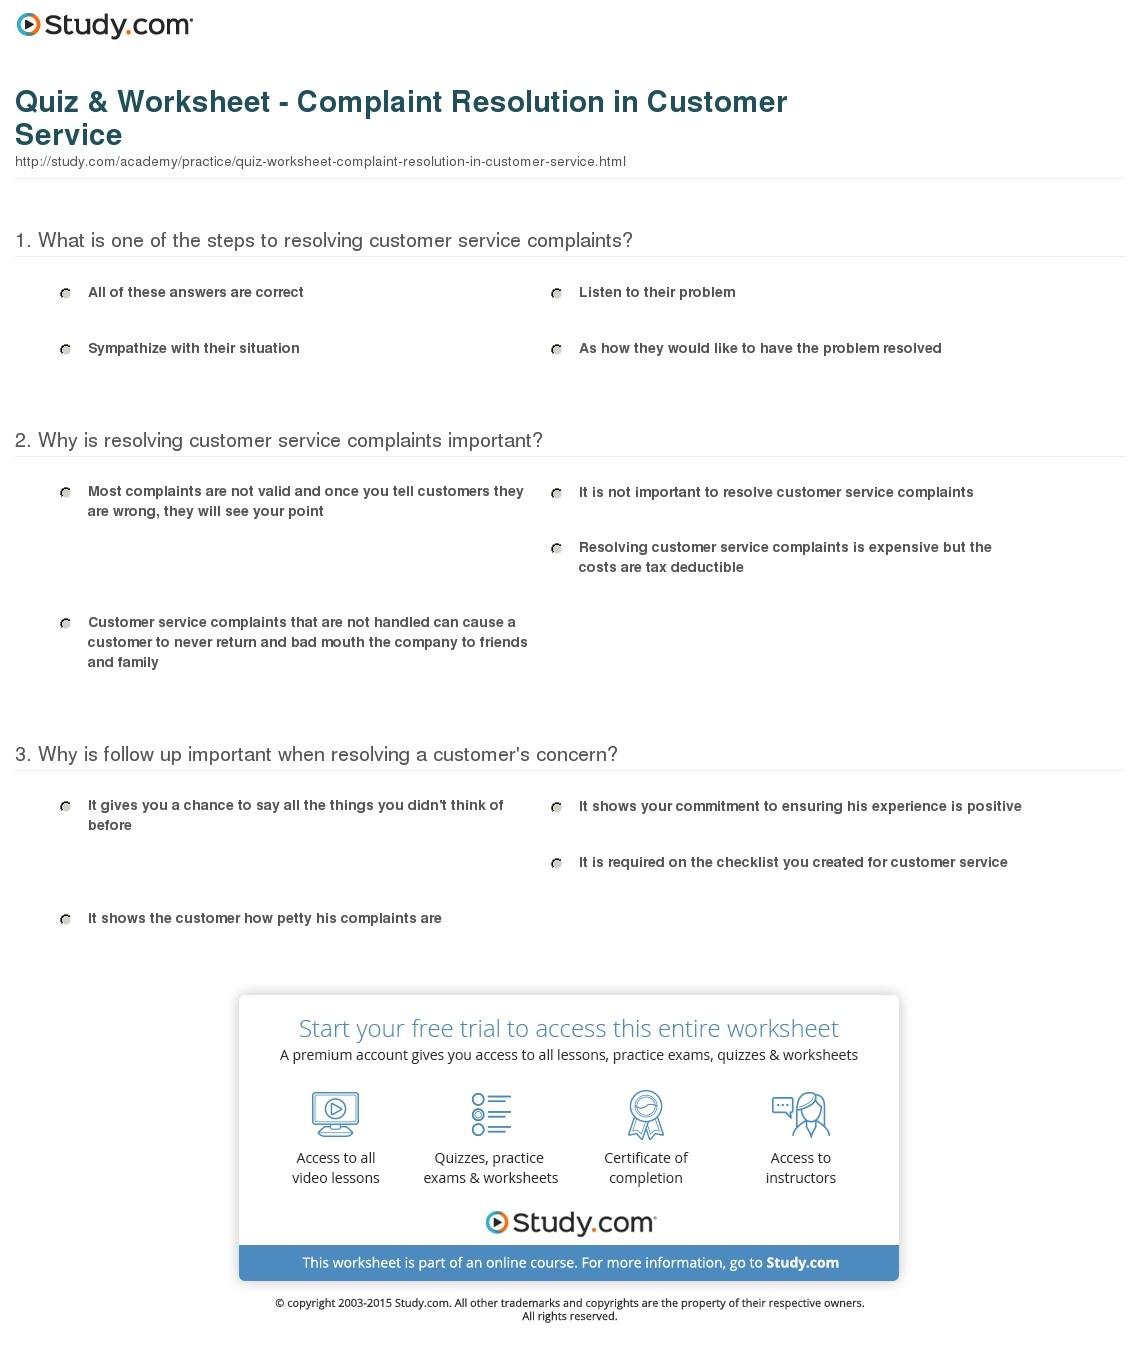 Quiz & Worksheet - Complaint Resolution In Customer Service | Study - Free Printable Customer Service Worksheets